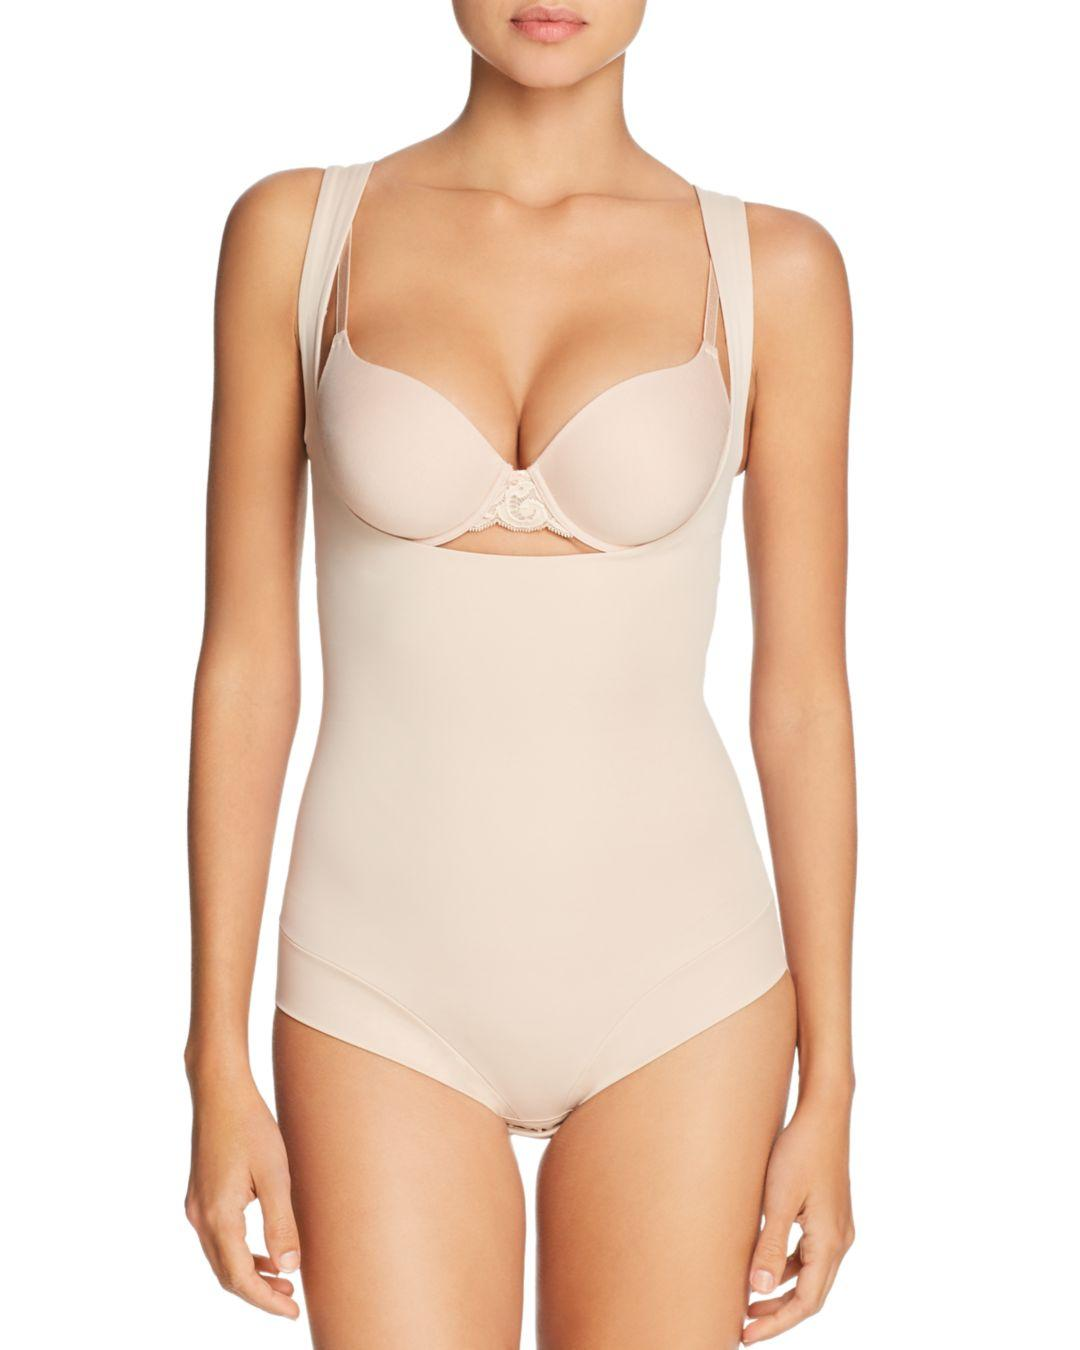 Lyst - Tc Fine Intimates Sheer Bodybriefer Strapless